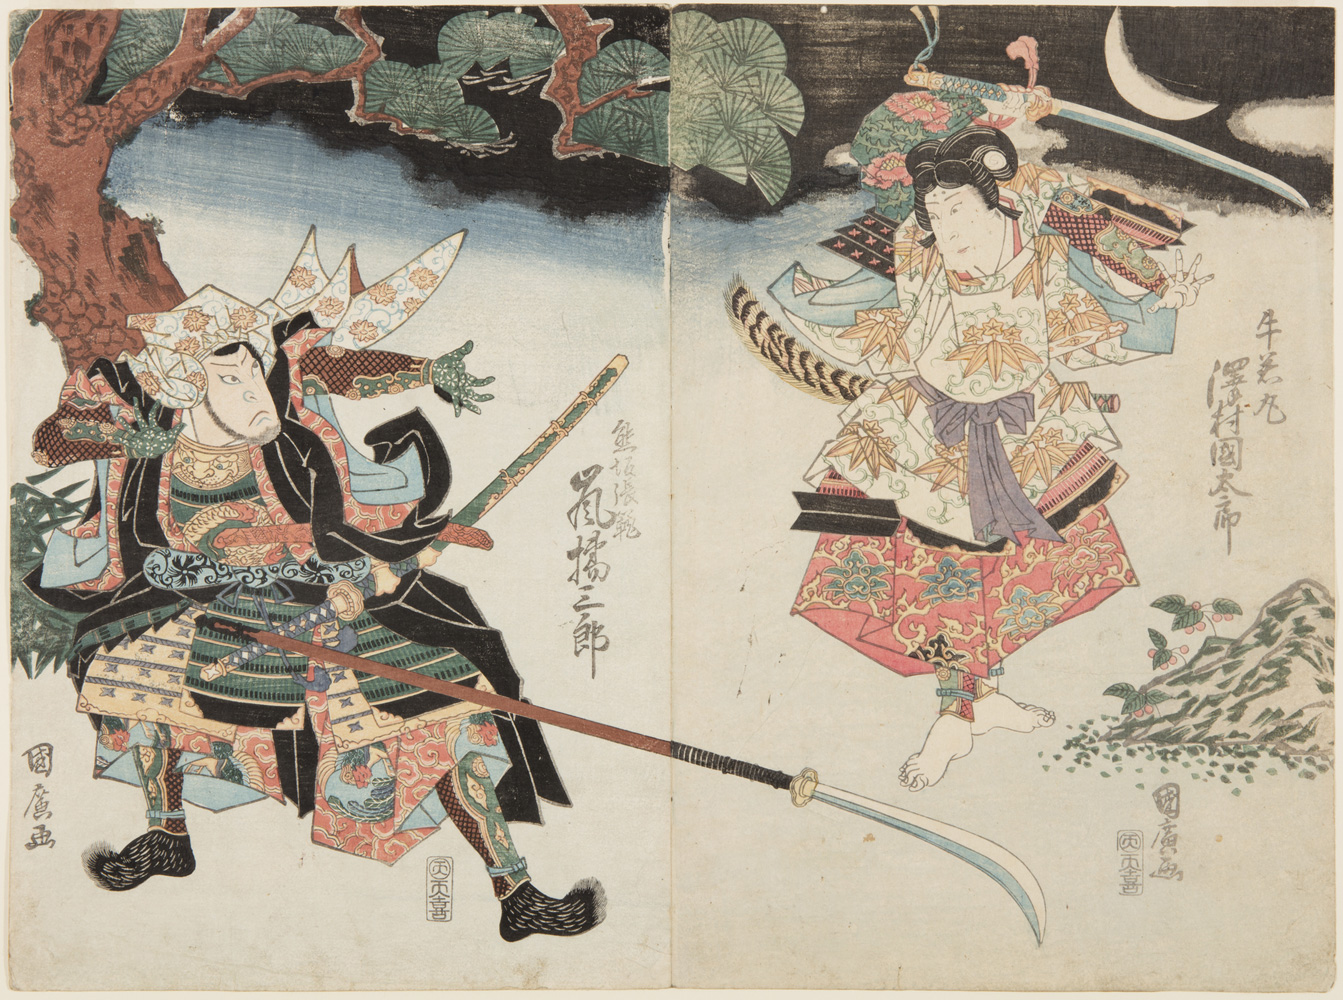 A Japanese print of two actors dressed in samurai costume in a fighting pose. They wield swords. In the background there is a tree, night sky and the moon.